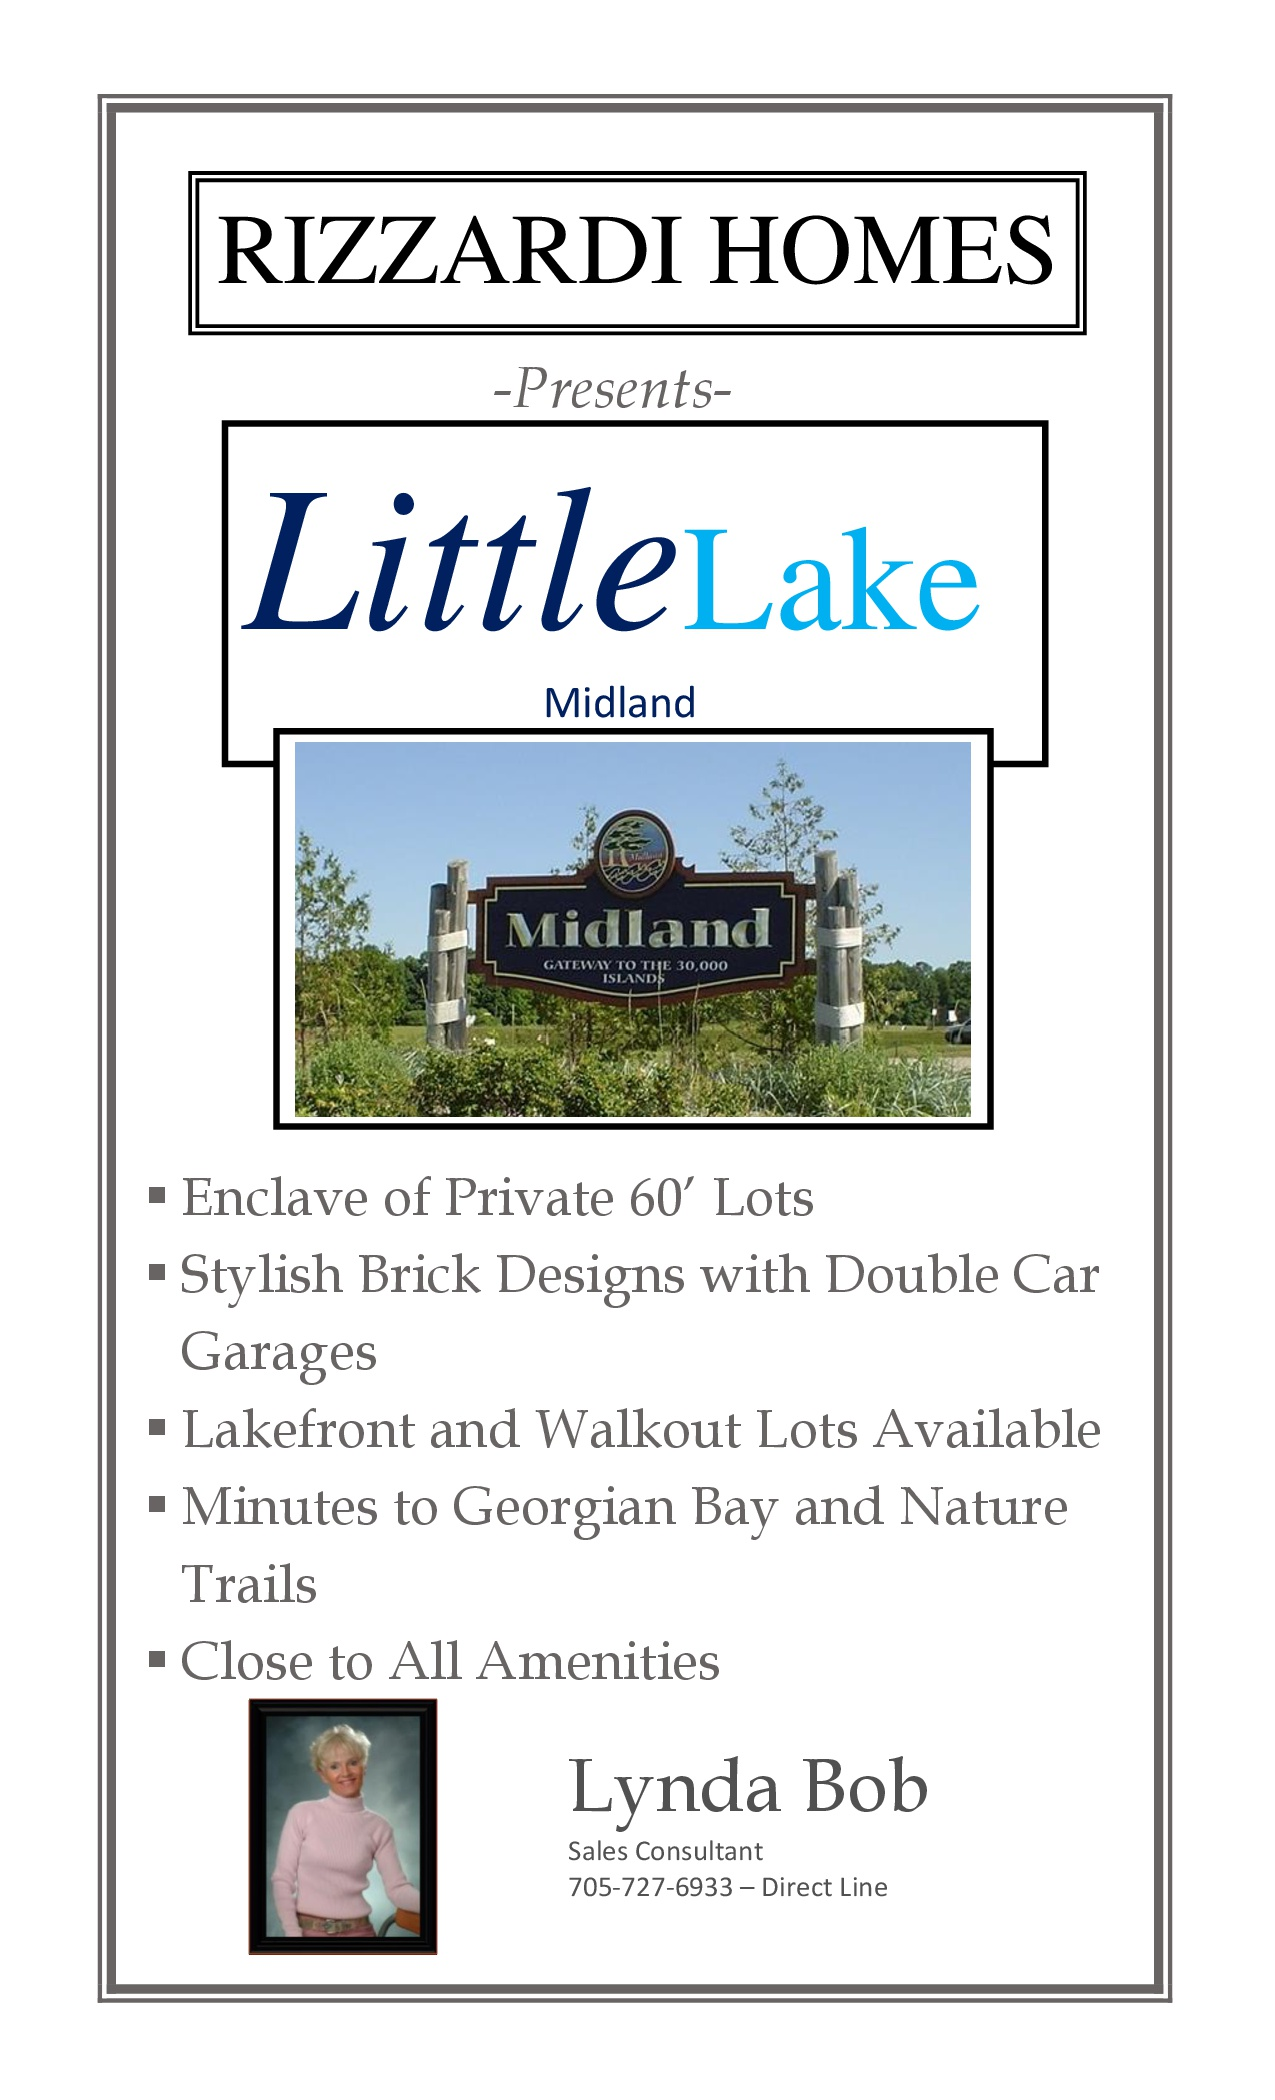 Midland Little Lake Cover Sheet